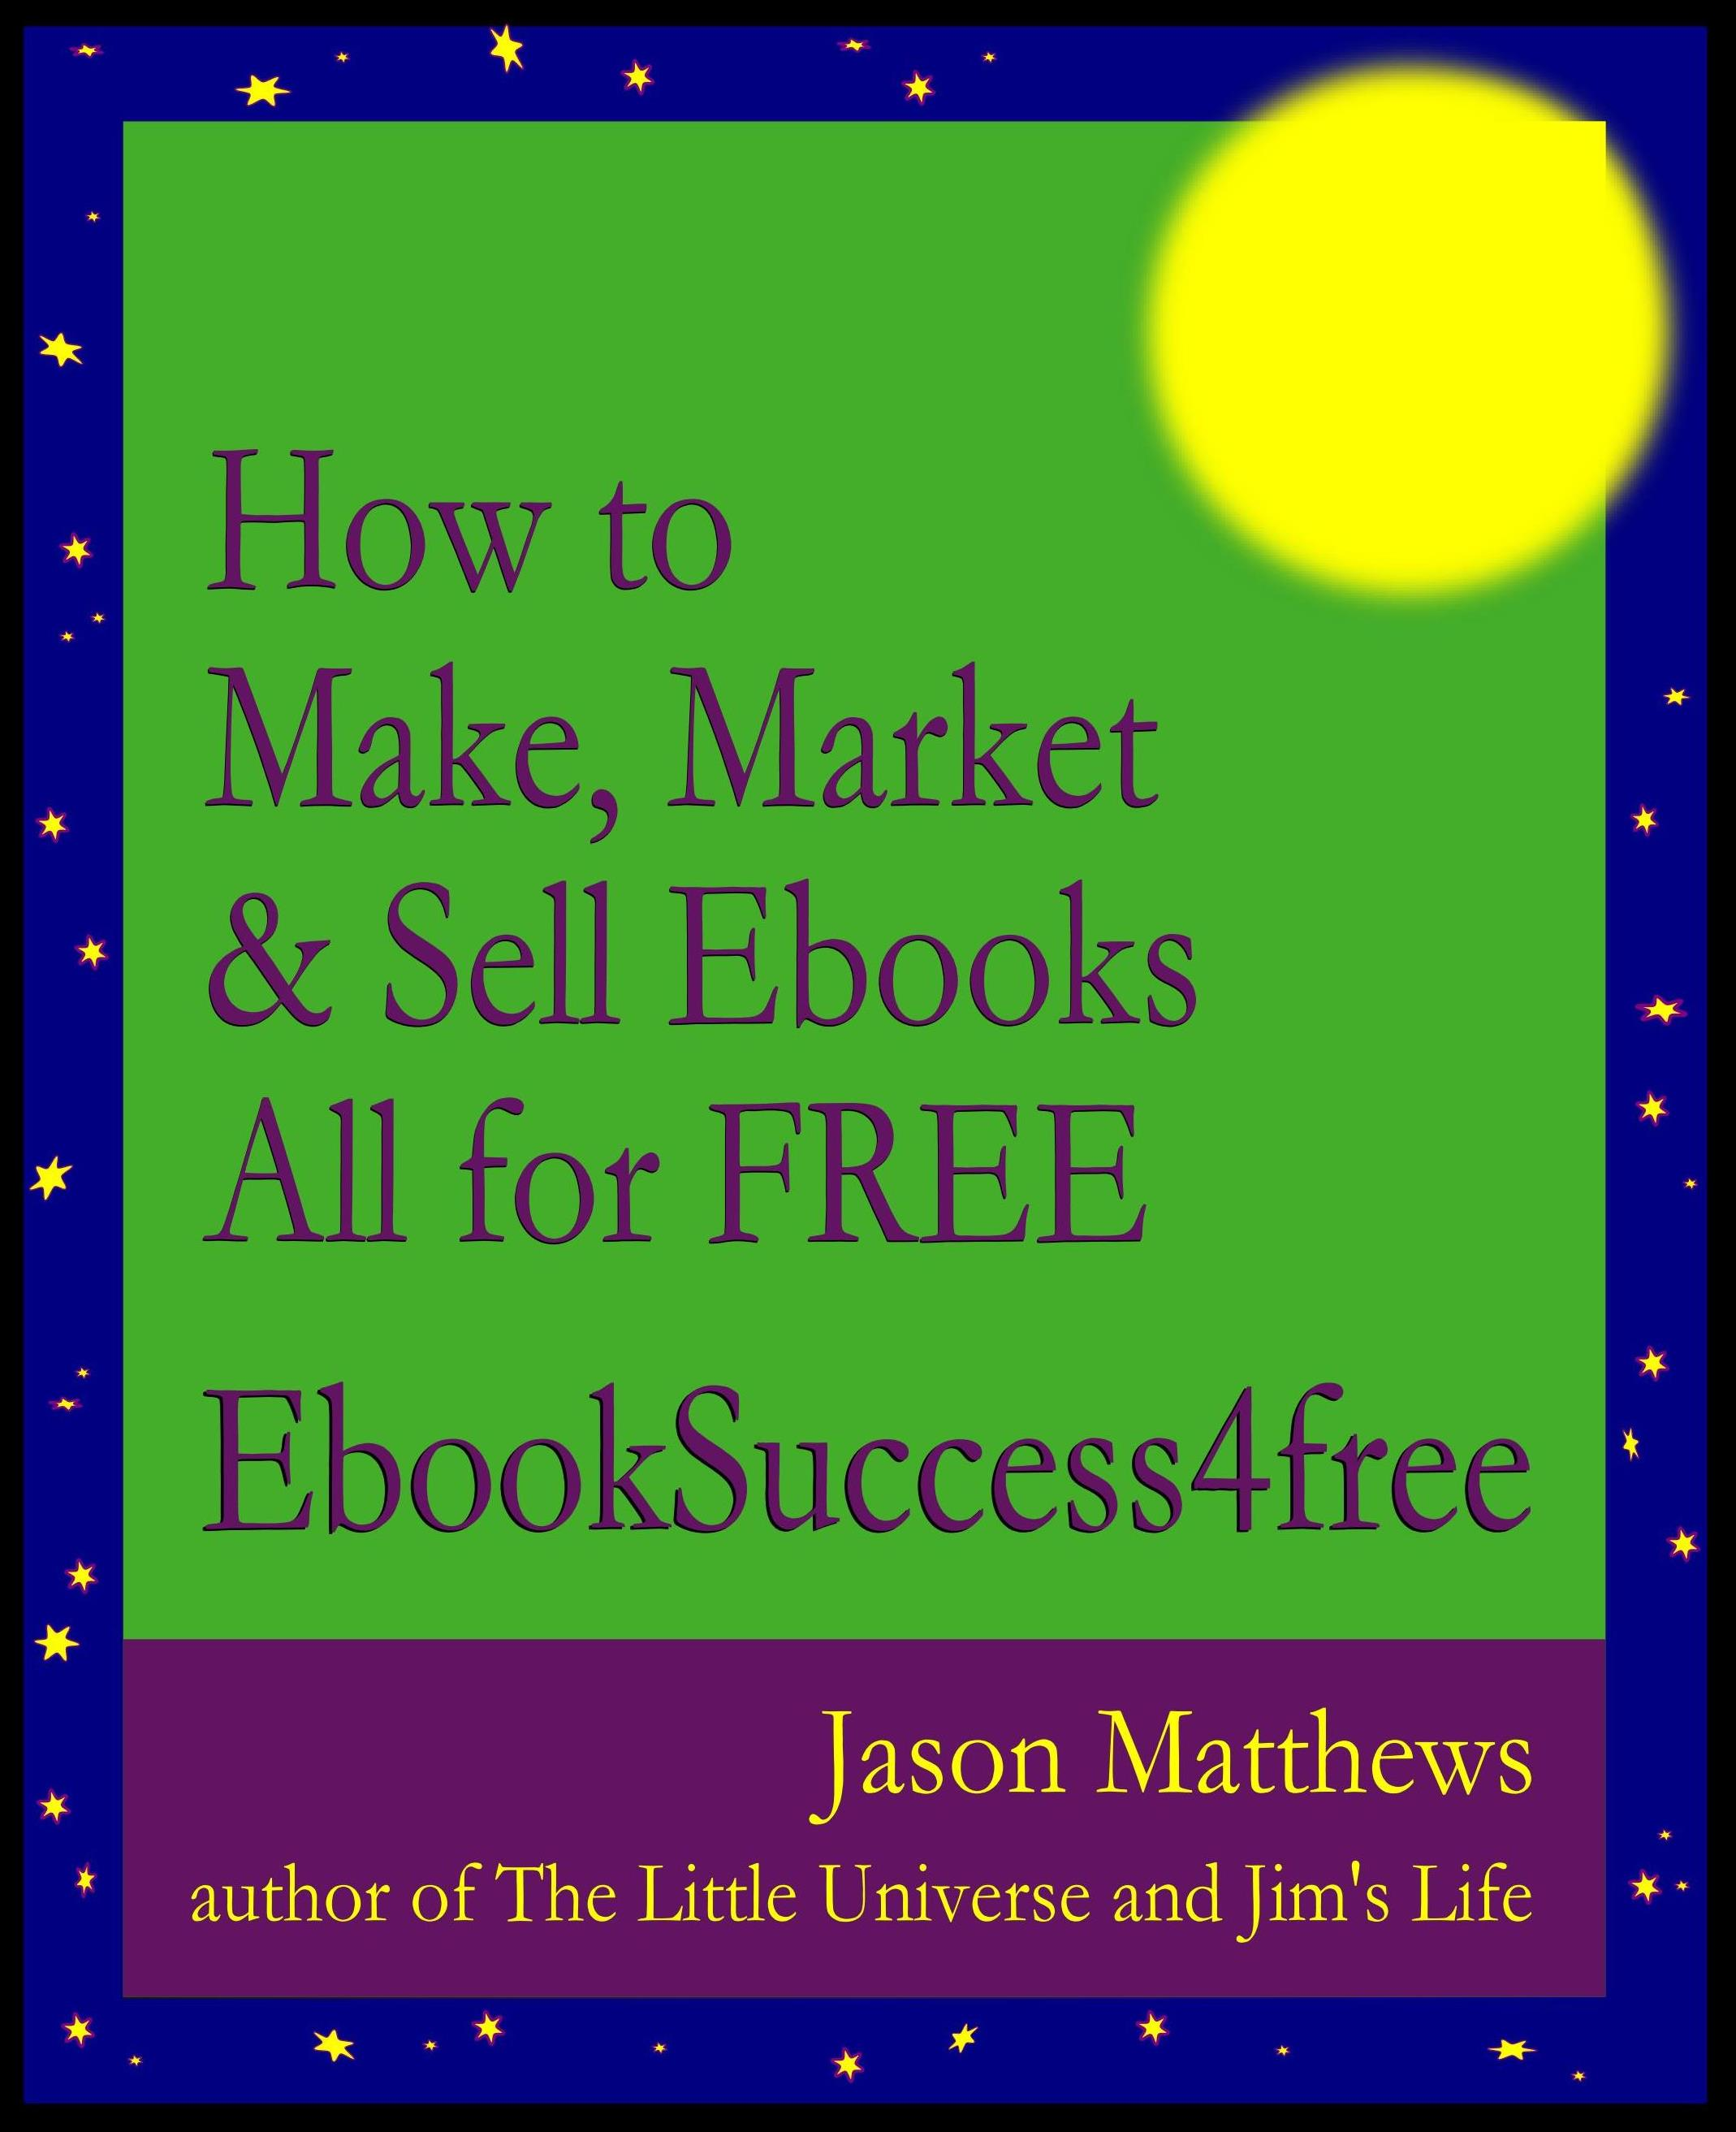 How To Make An Ebook Cover : Ebook cover design how to make market and sell ebooks